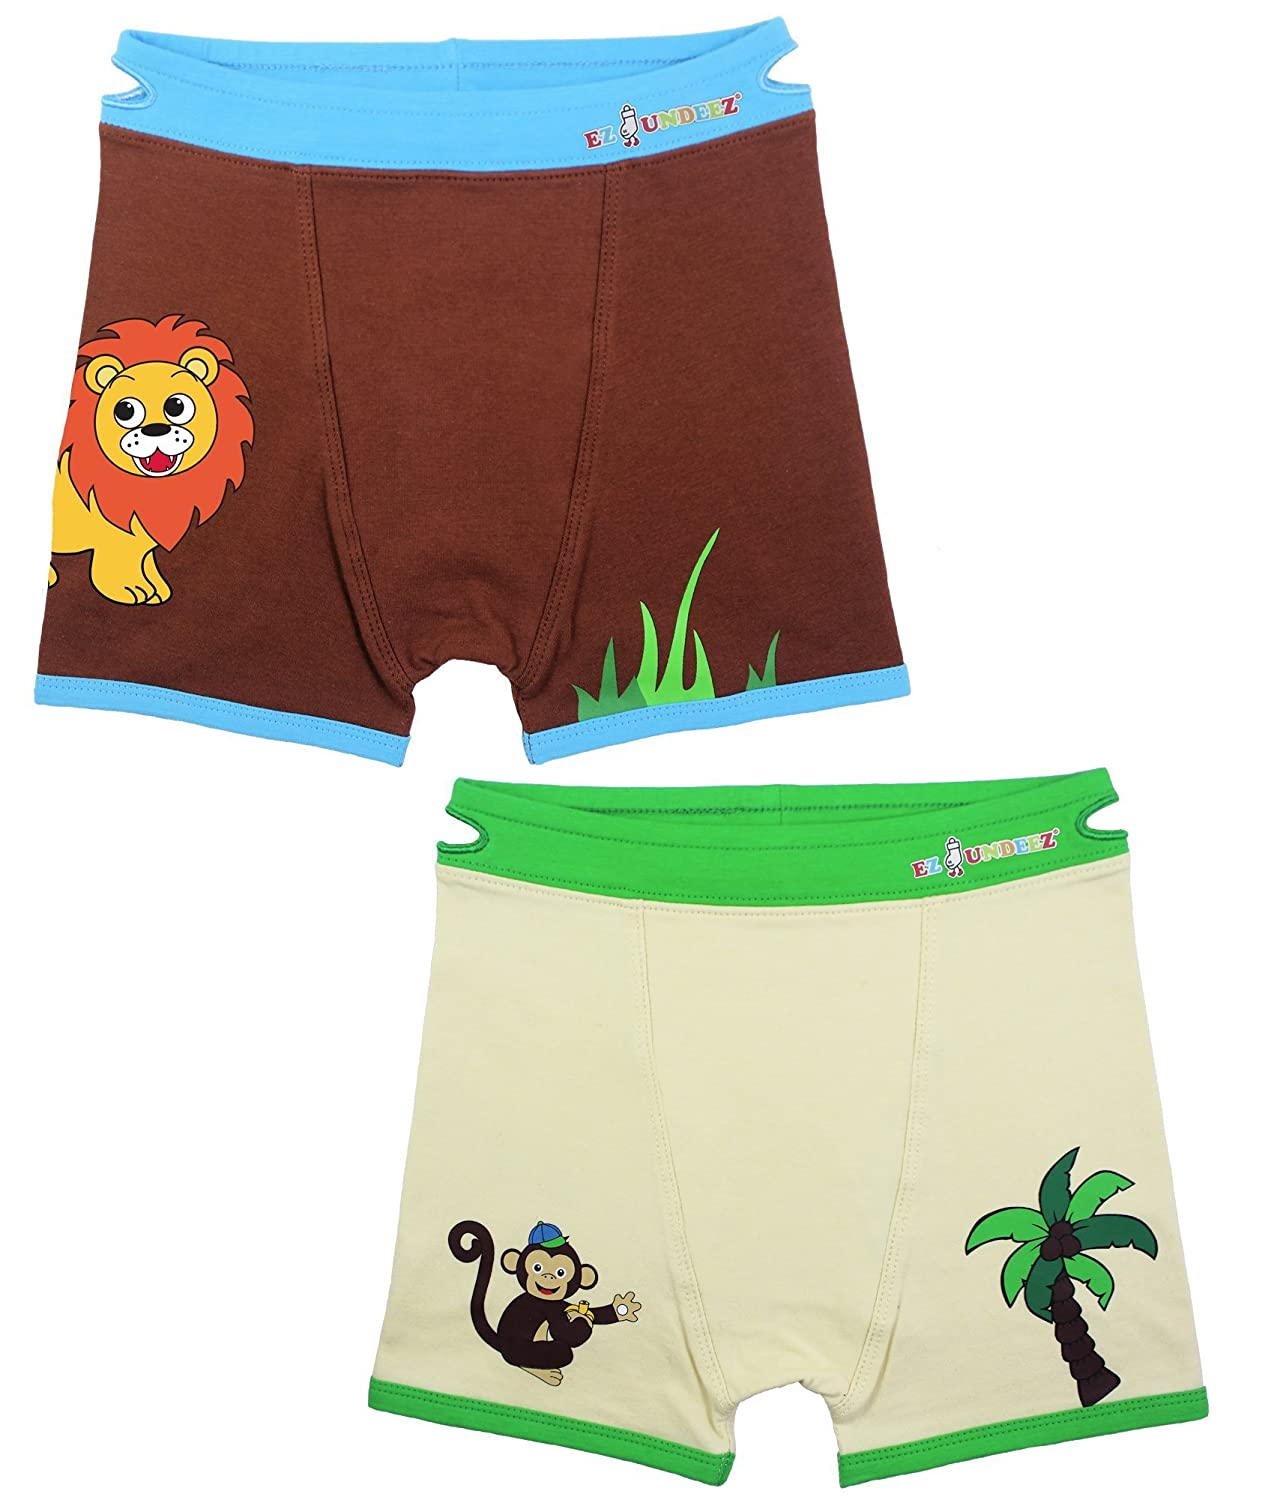 Boys Boxers Toddler Training Underwear with Easy Pull Up Handles Ez Sox